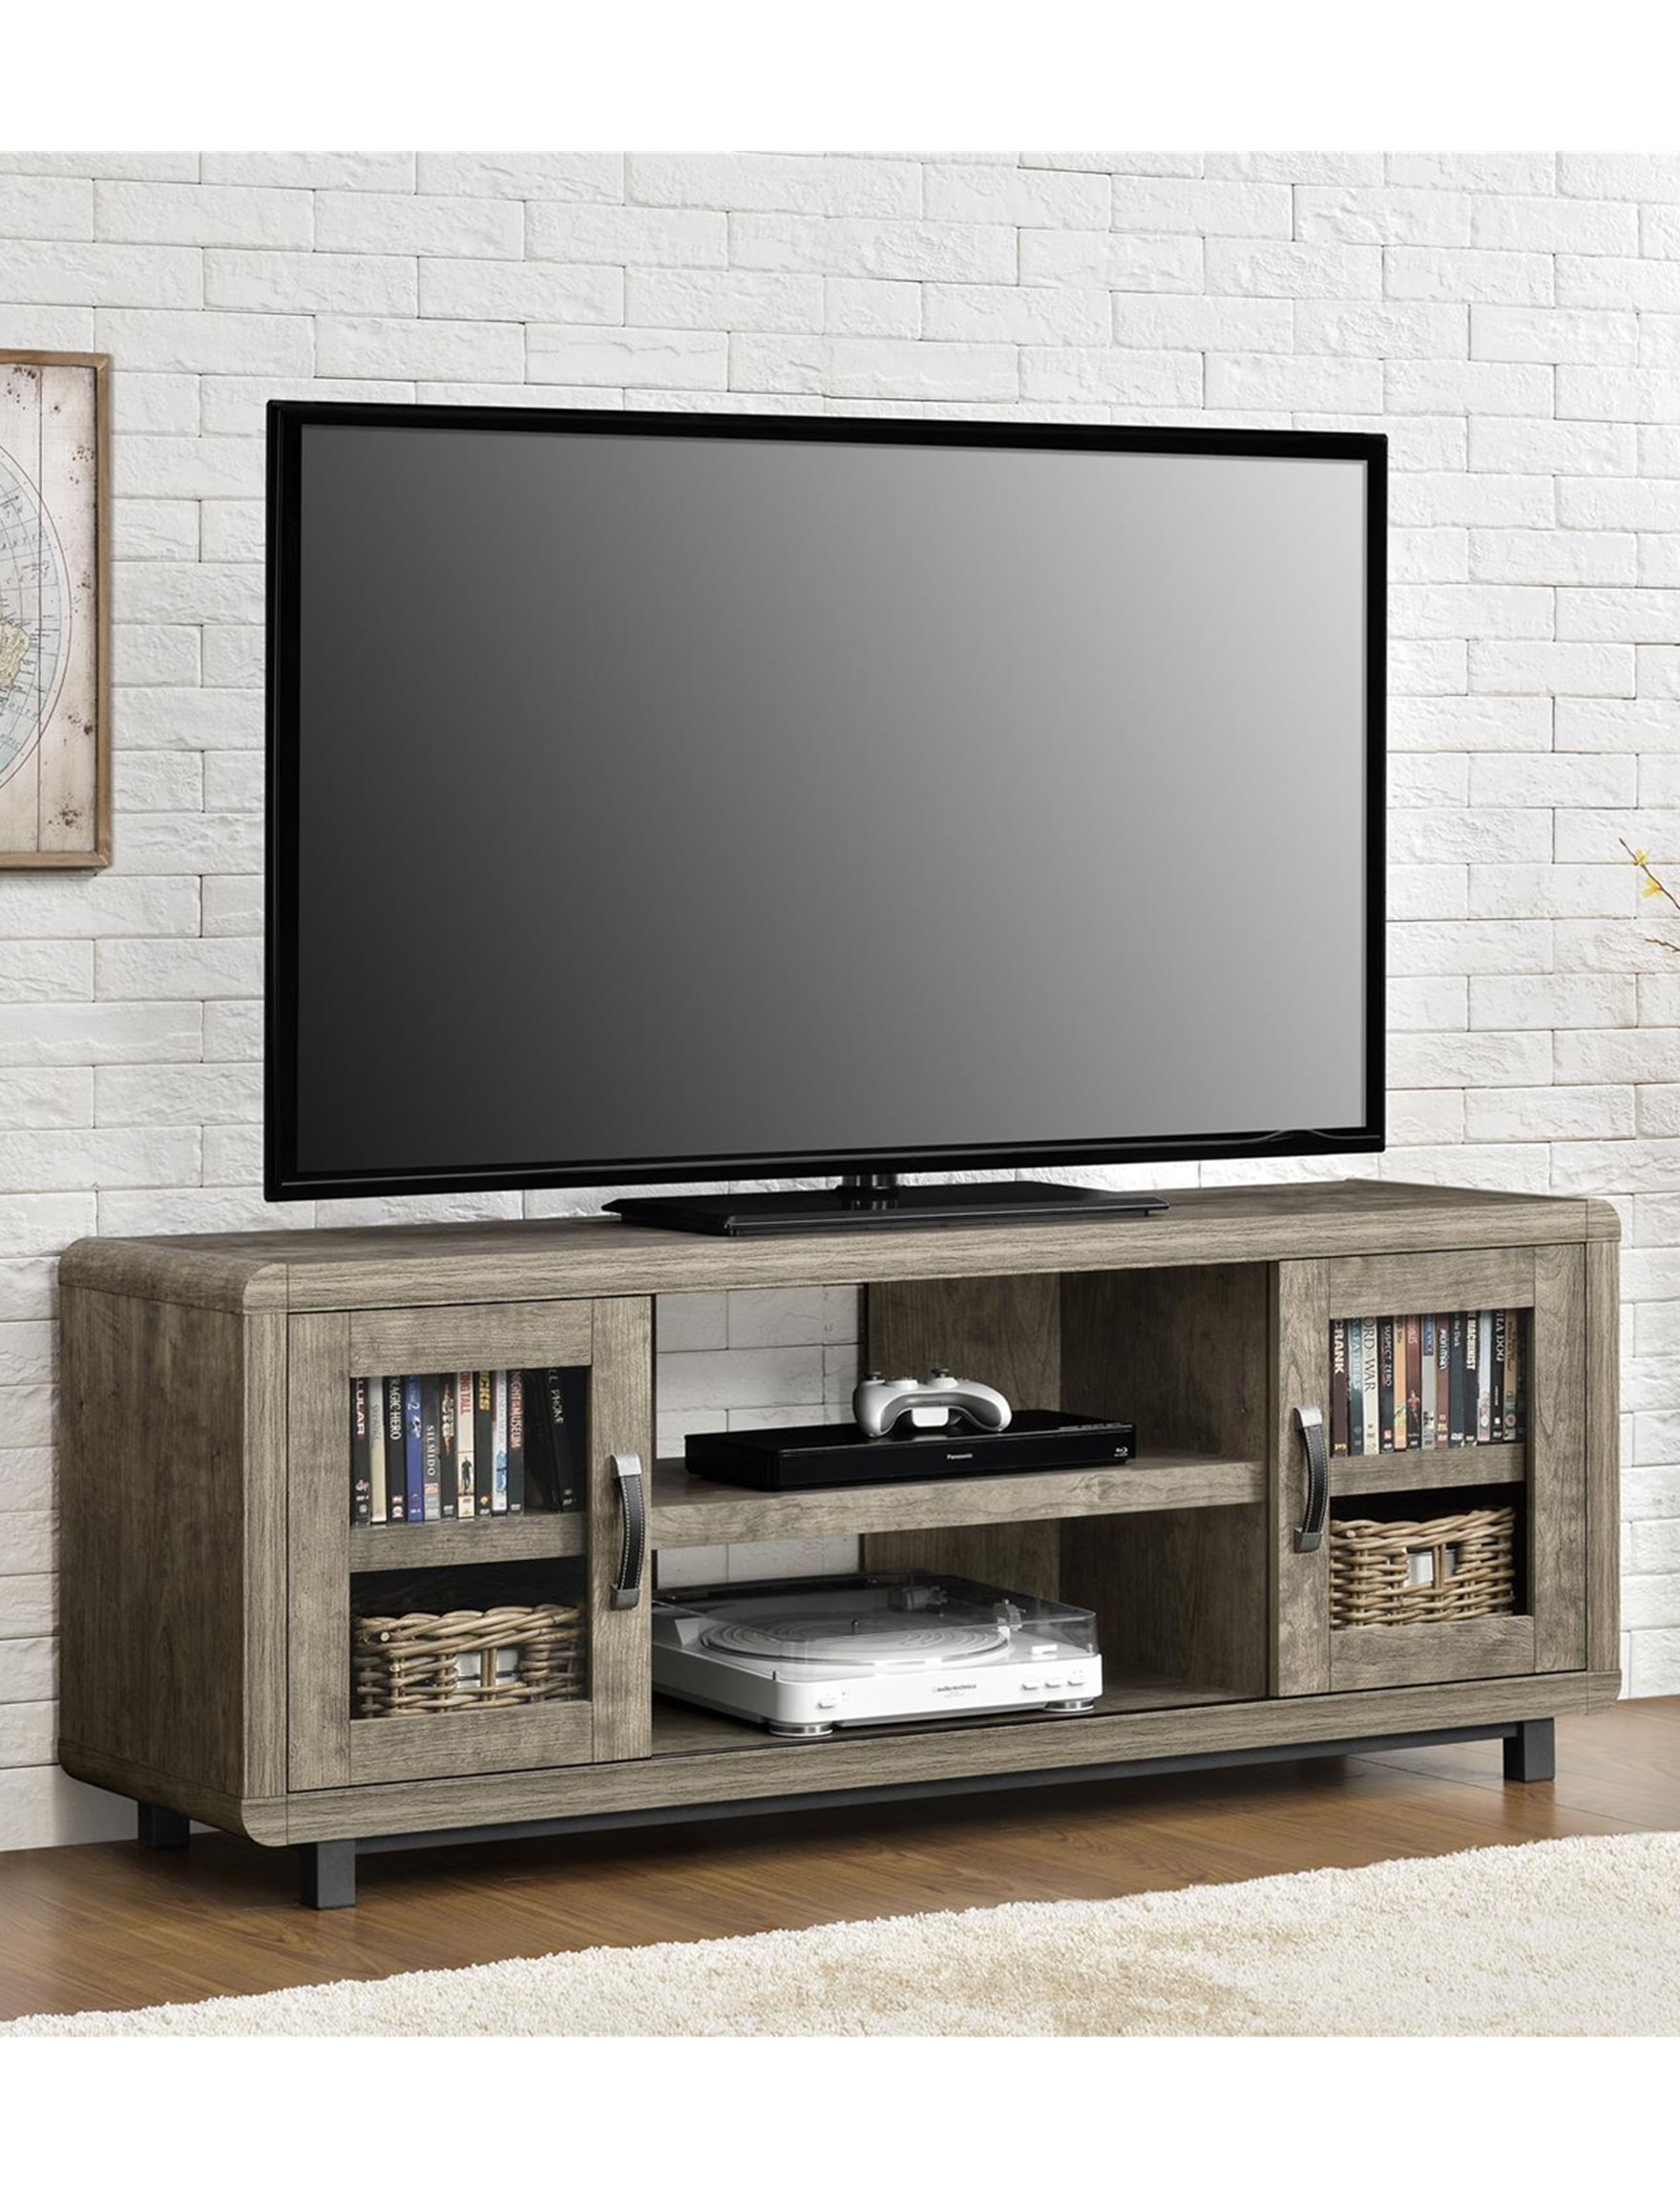 Ameriwood Brown TV Stands & Entertainment Centers Living Room Furniture